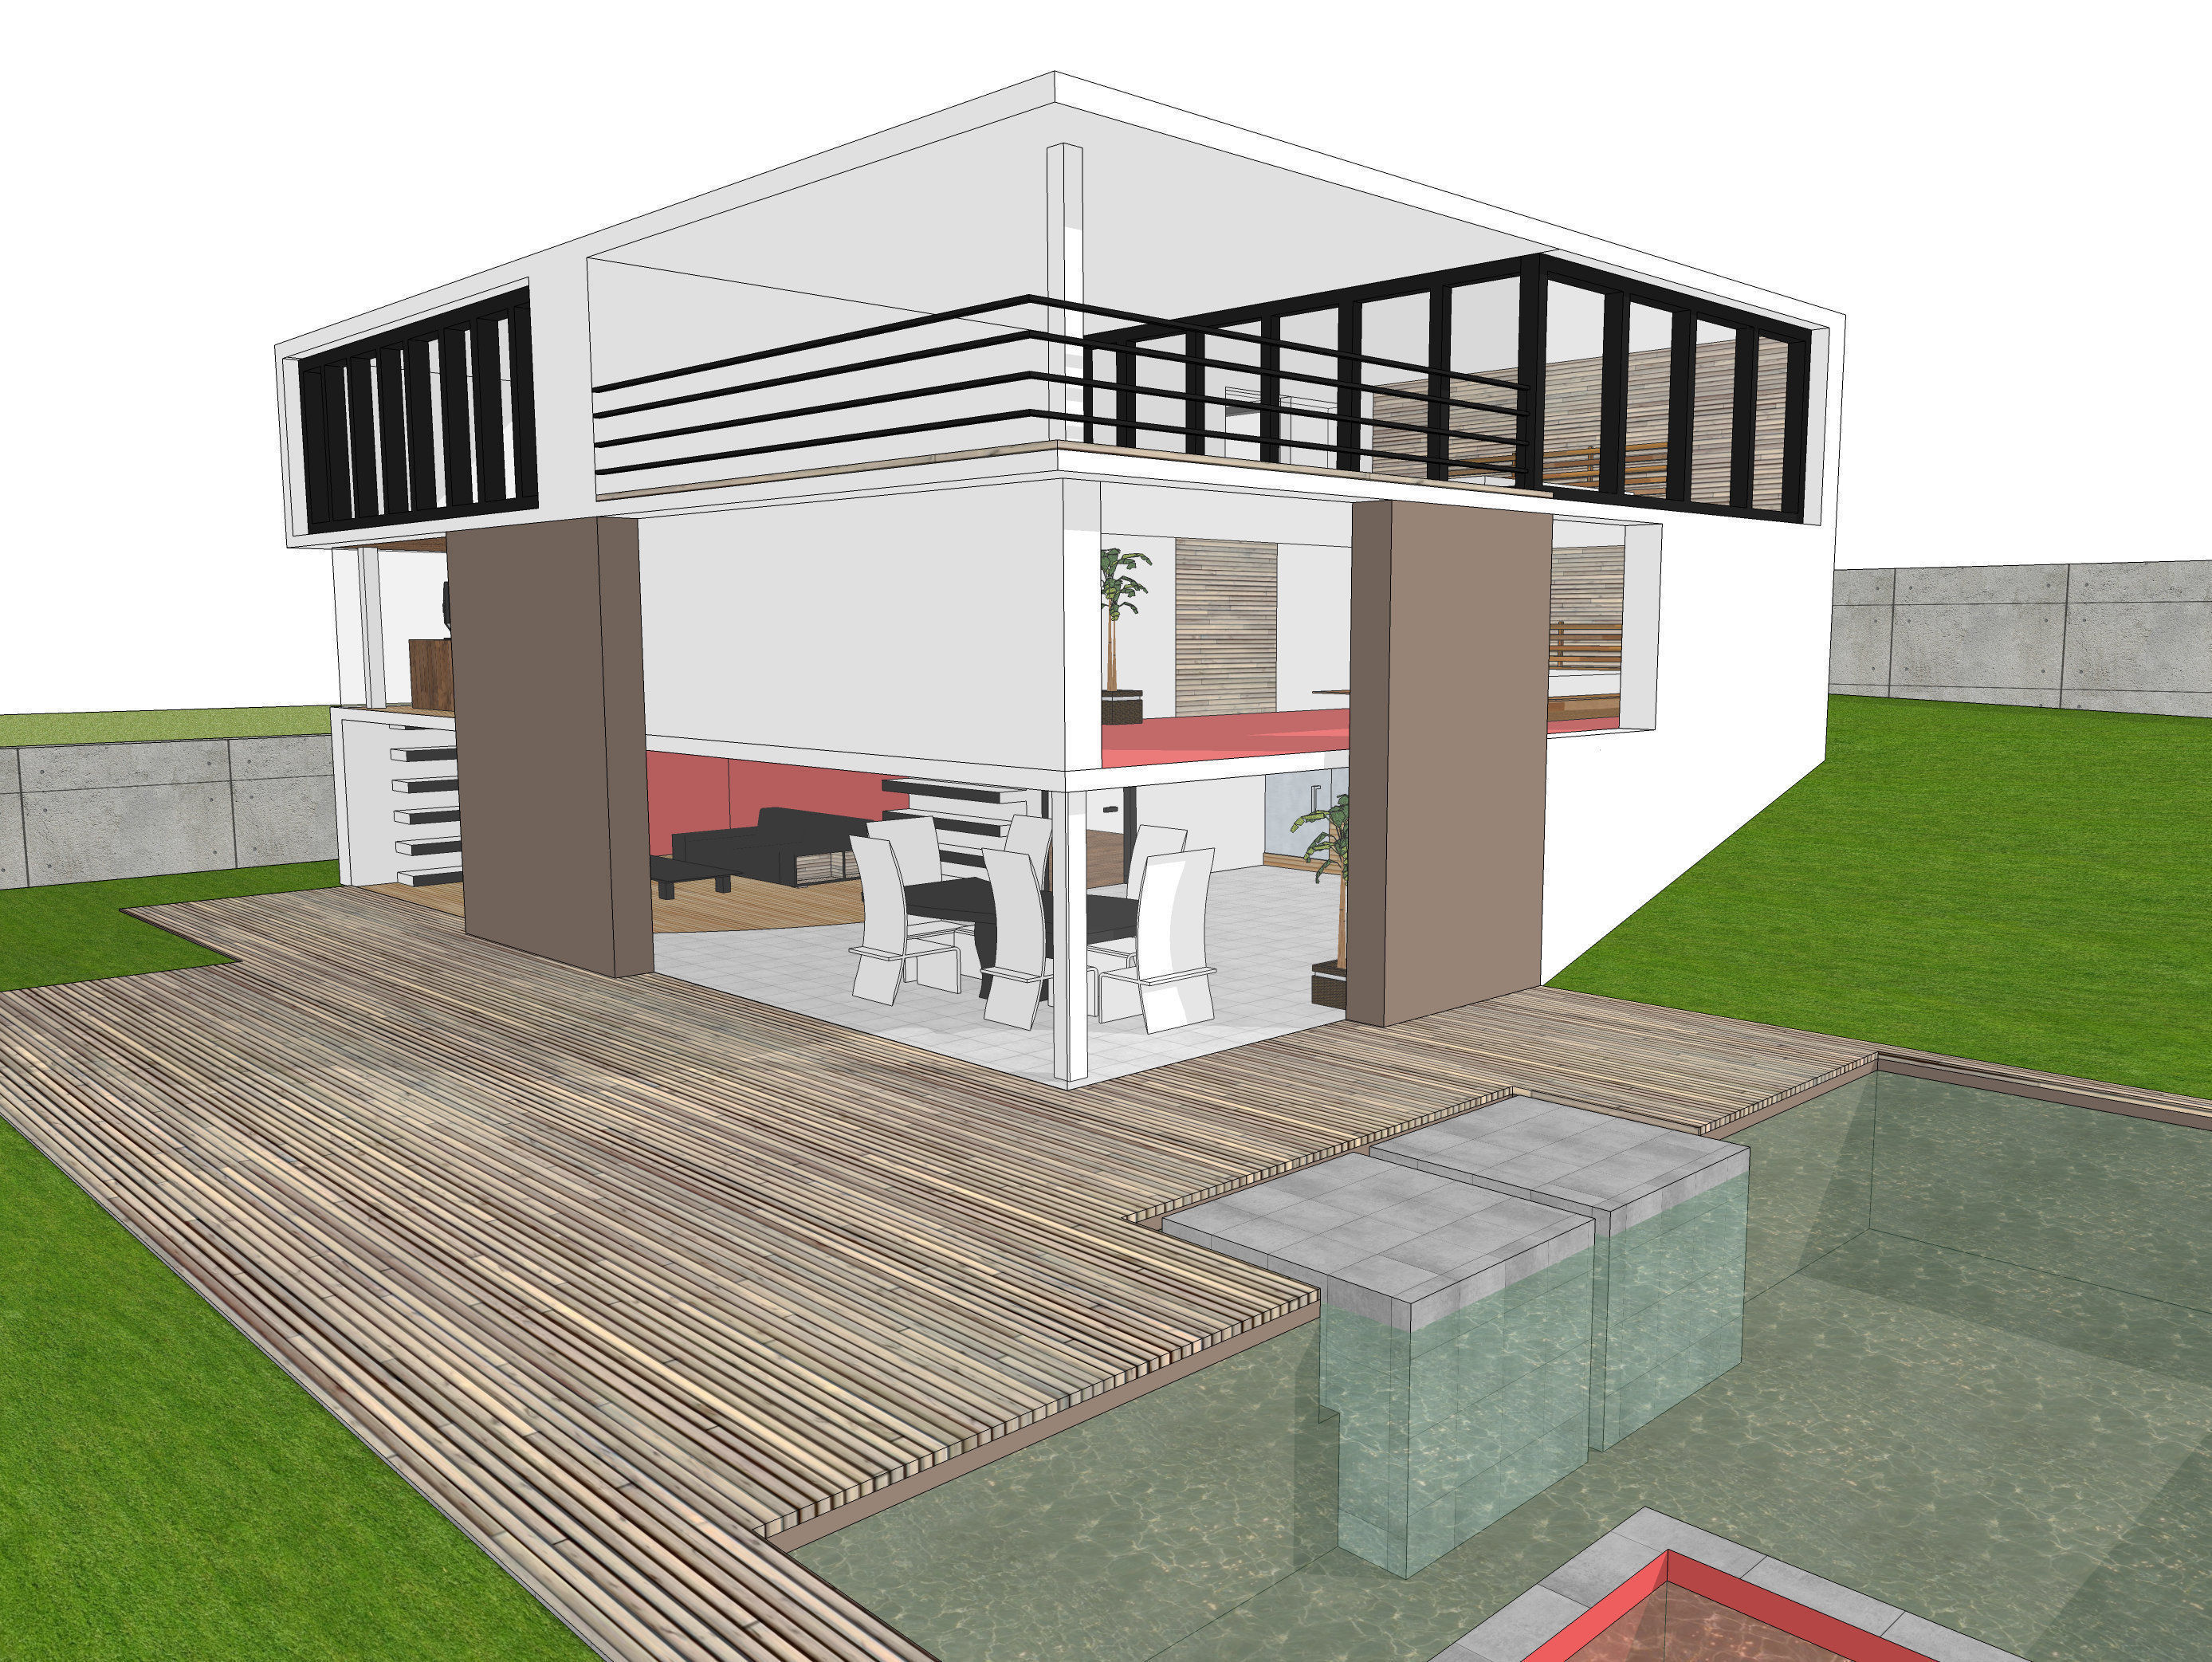 Modern house free 3d model 3ds dae dwg skp for Build a 3d house online